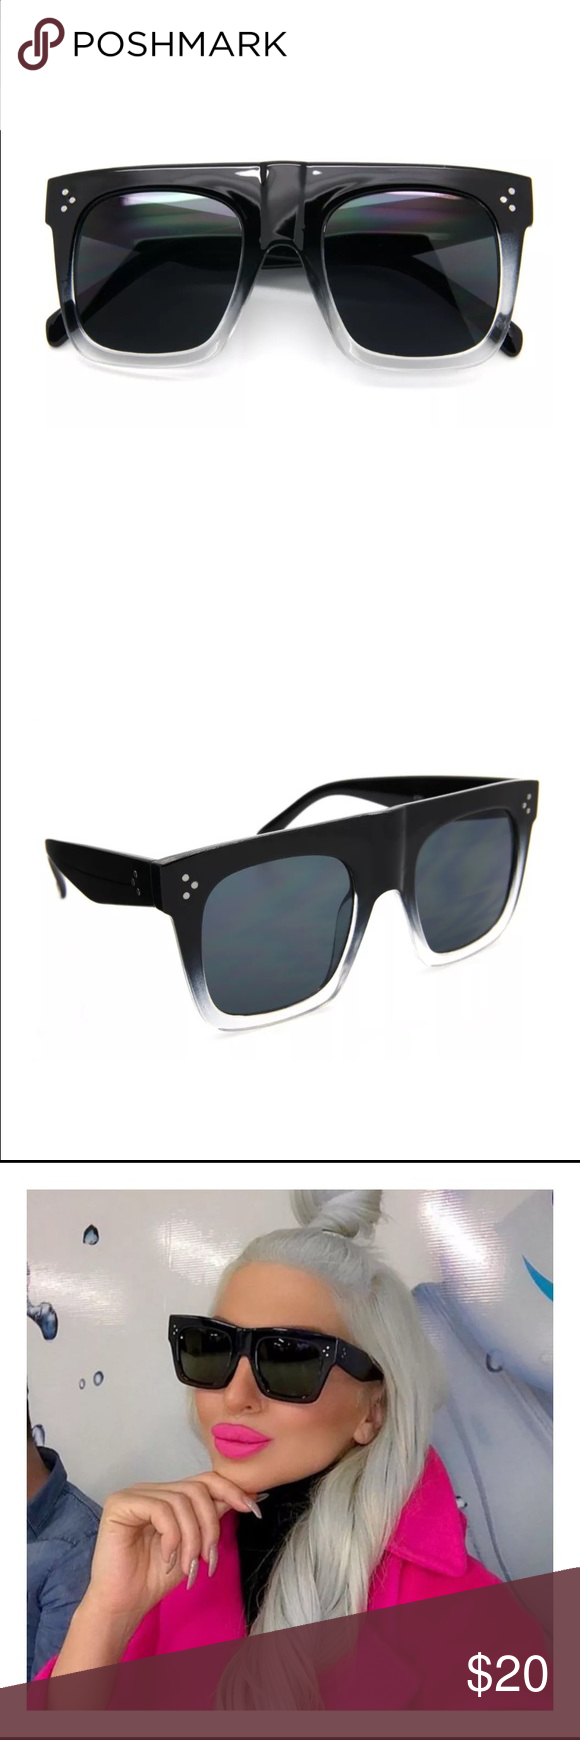 dc6a91fd6d5 Looks like the Celine ZZ-top sunnies but they are a more affordable  version.NO TRADESFAST SHIPPER Celine Accessories Sunglasses